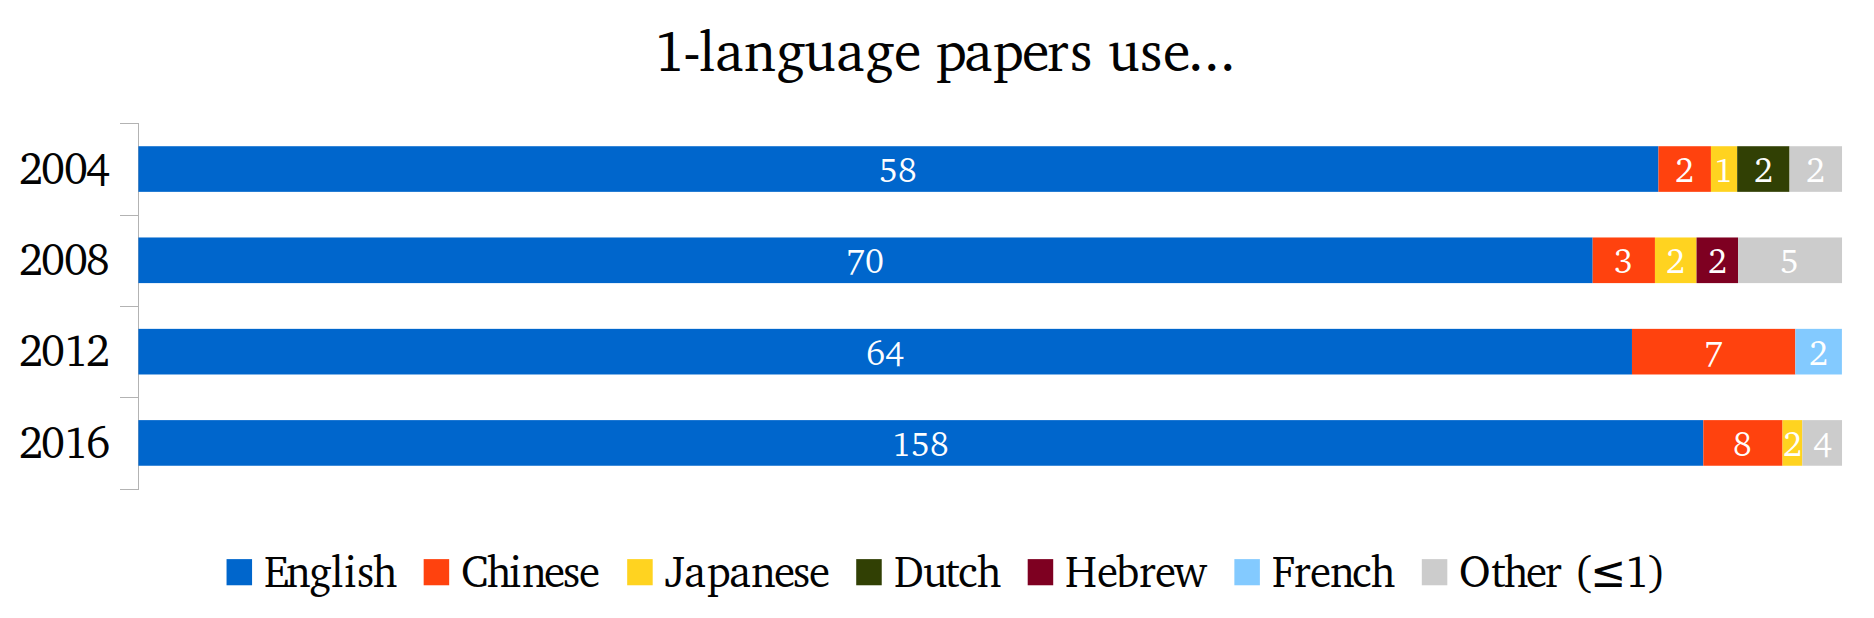 1-language papers use...